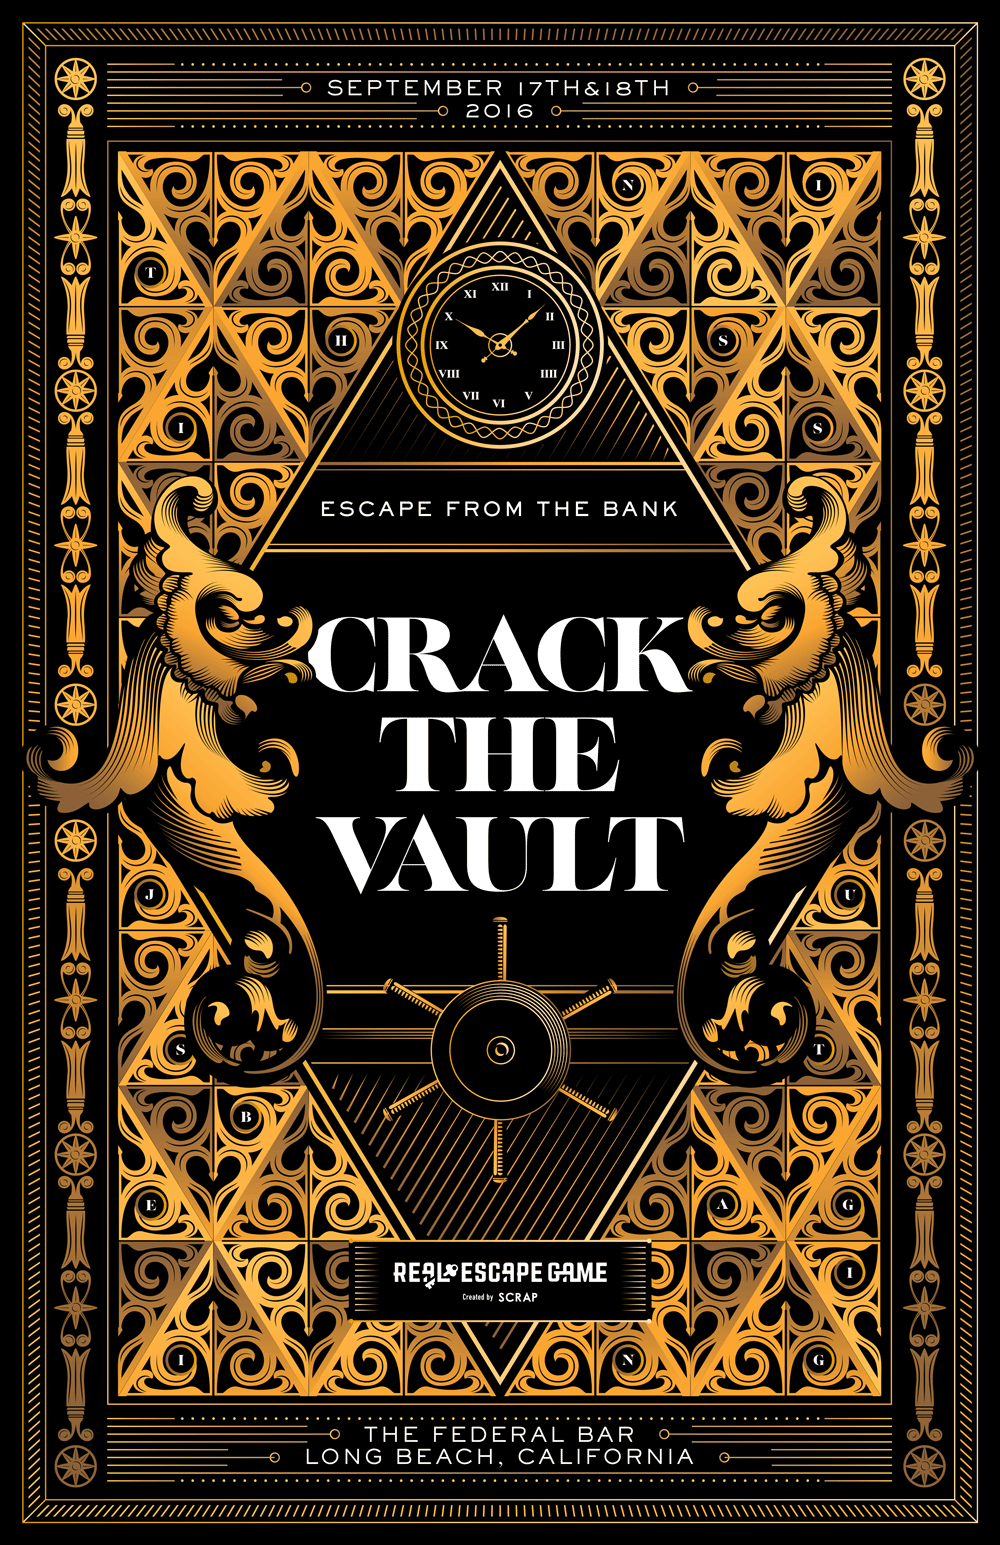 062916_EscapeFromTheBank_poster-R.png